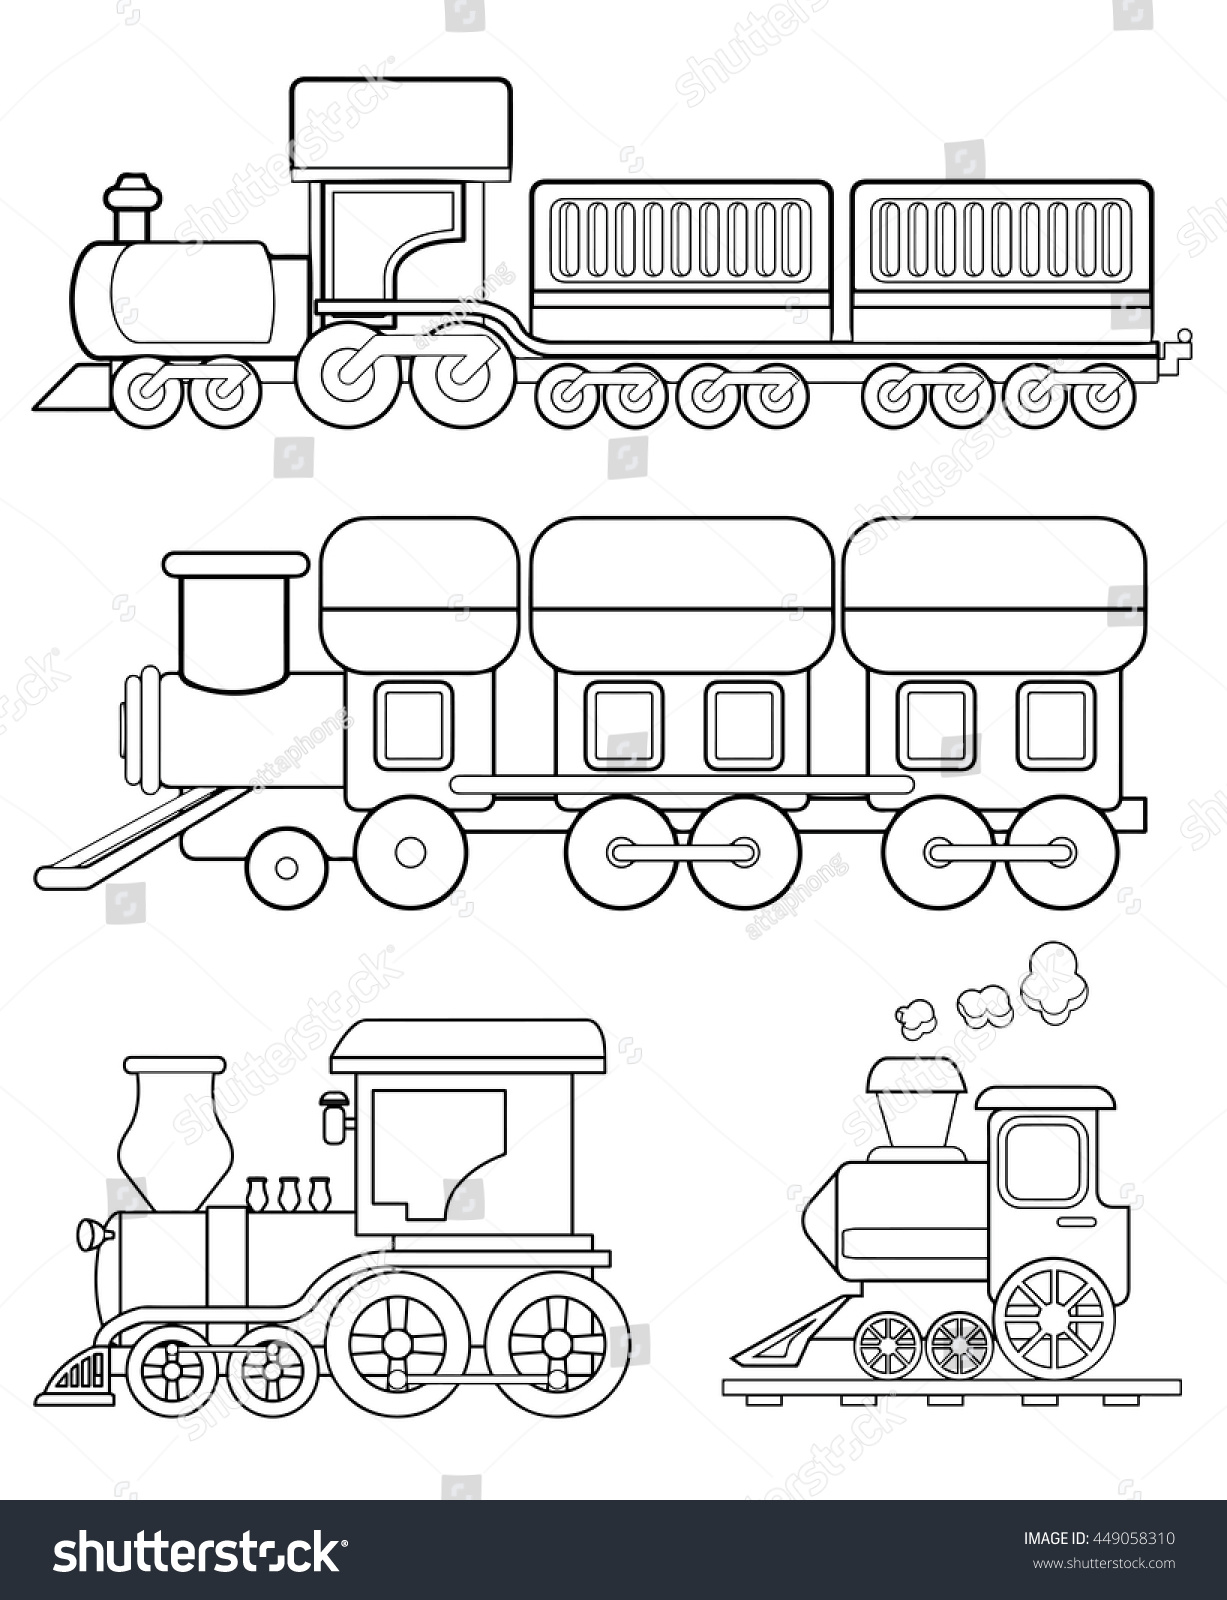 train coloring page vector stock vector 449058310 shutterstock